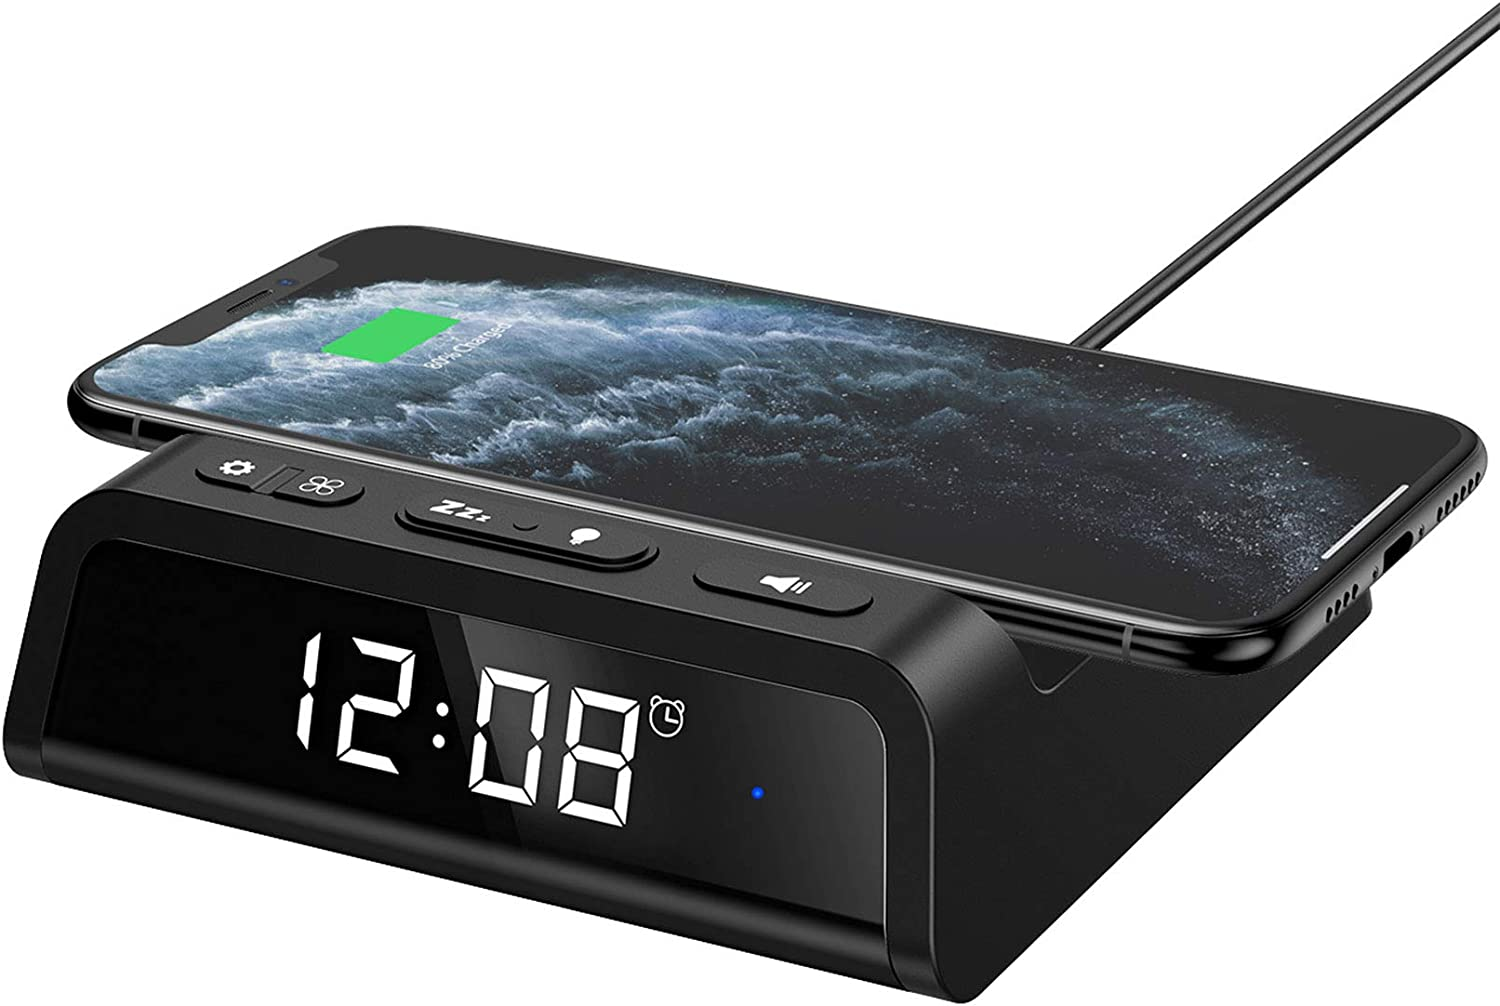 Seneo Alarm Clock with Wireless Charging Pad, 7.5W Wireless Charger for iPhone 11/Pro Max/SE 2/XR/XS/X/8/8plus, 10W Fast Wireless Charging for Galaxy S10/S10+/S9/S9+/Note10/9/8, Additional USB Port